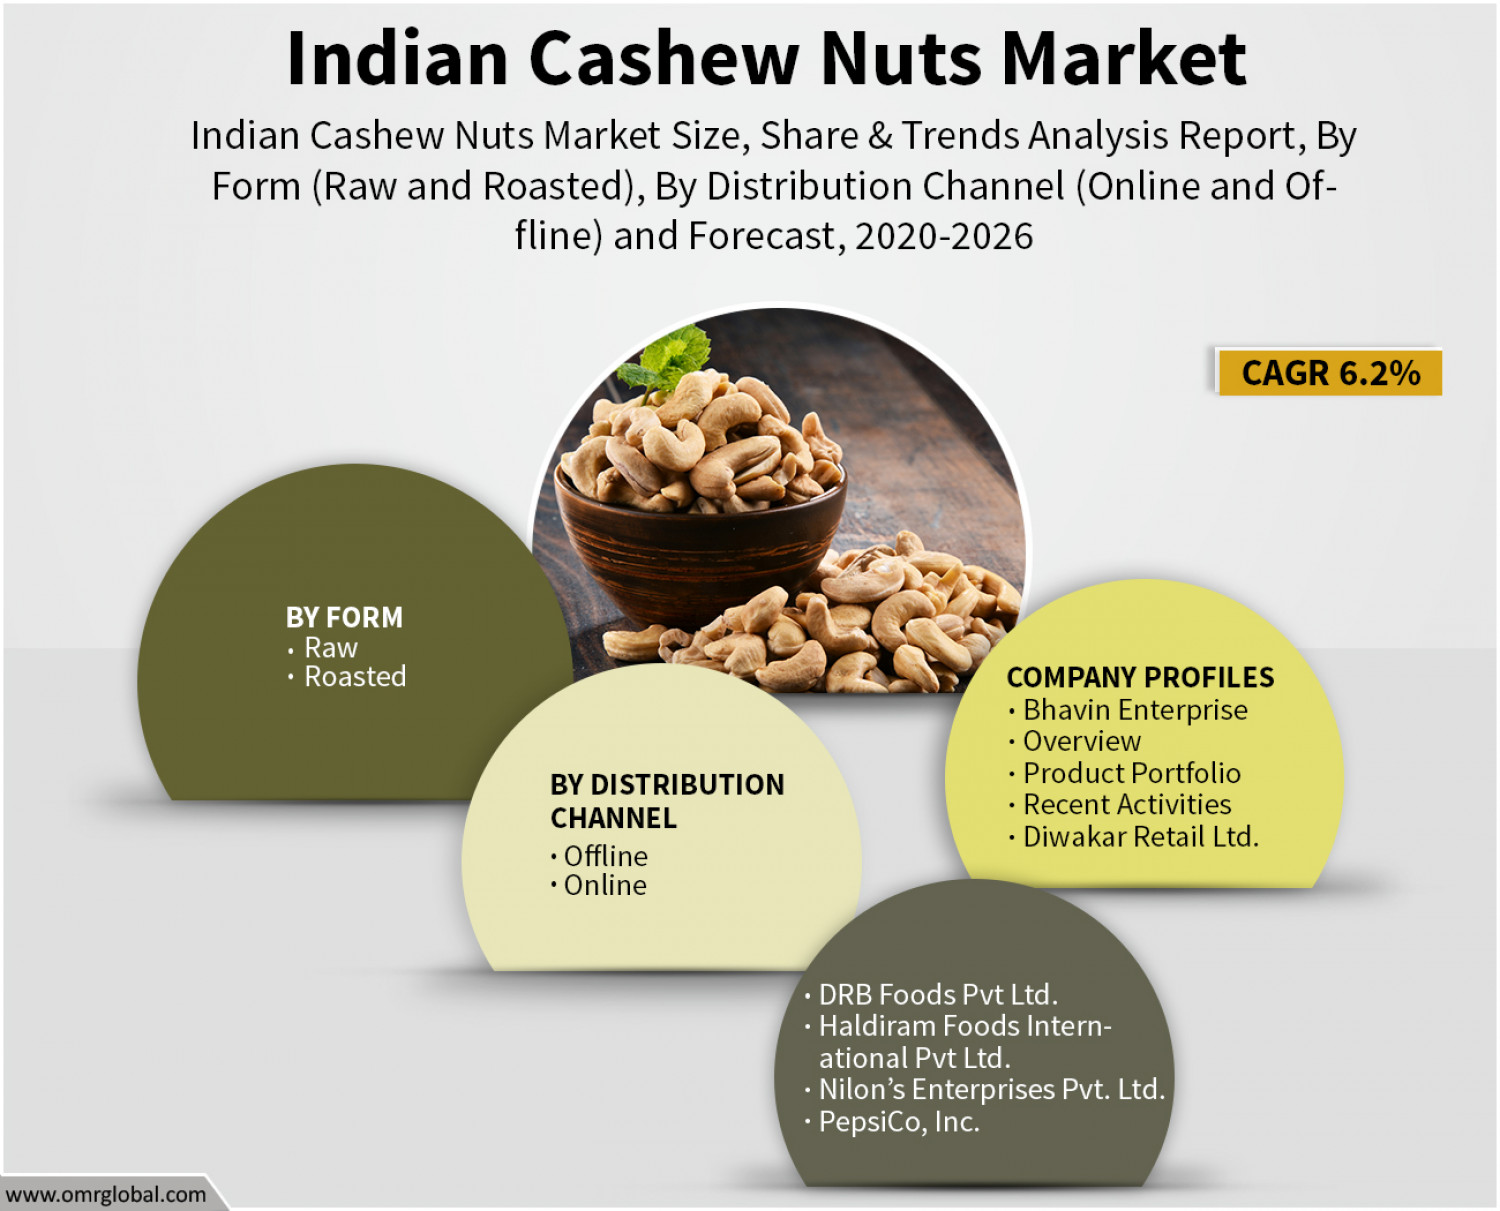 Indian Cashew Nuts Market Research and Forecast 2020-2026 Infographic